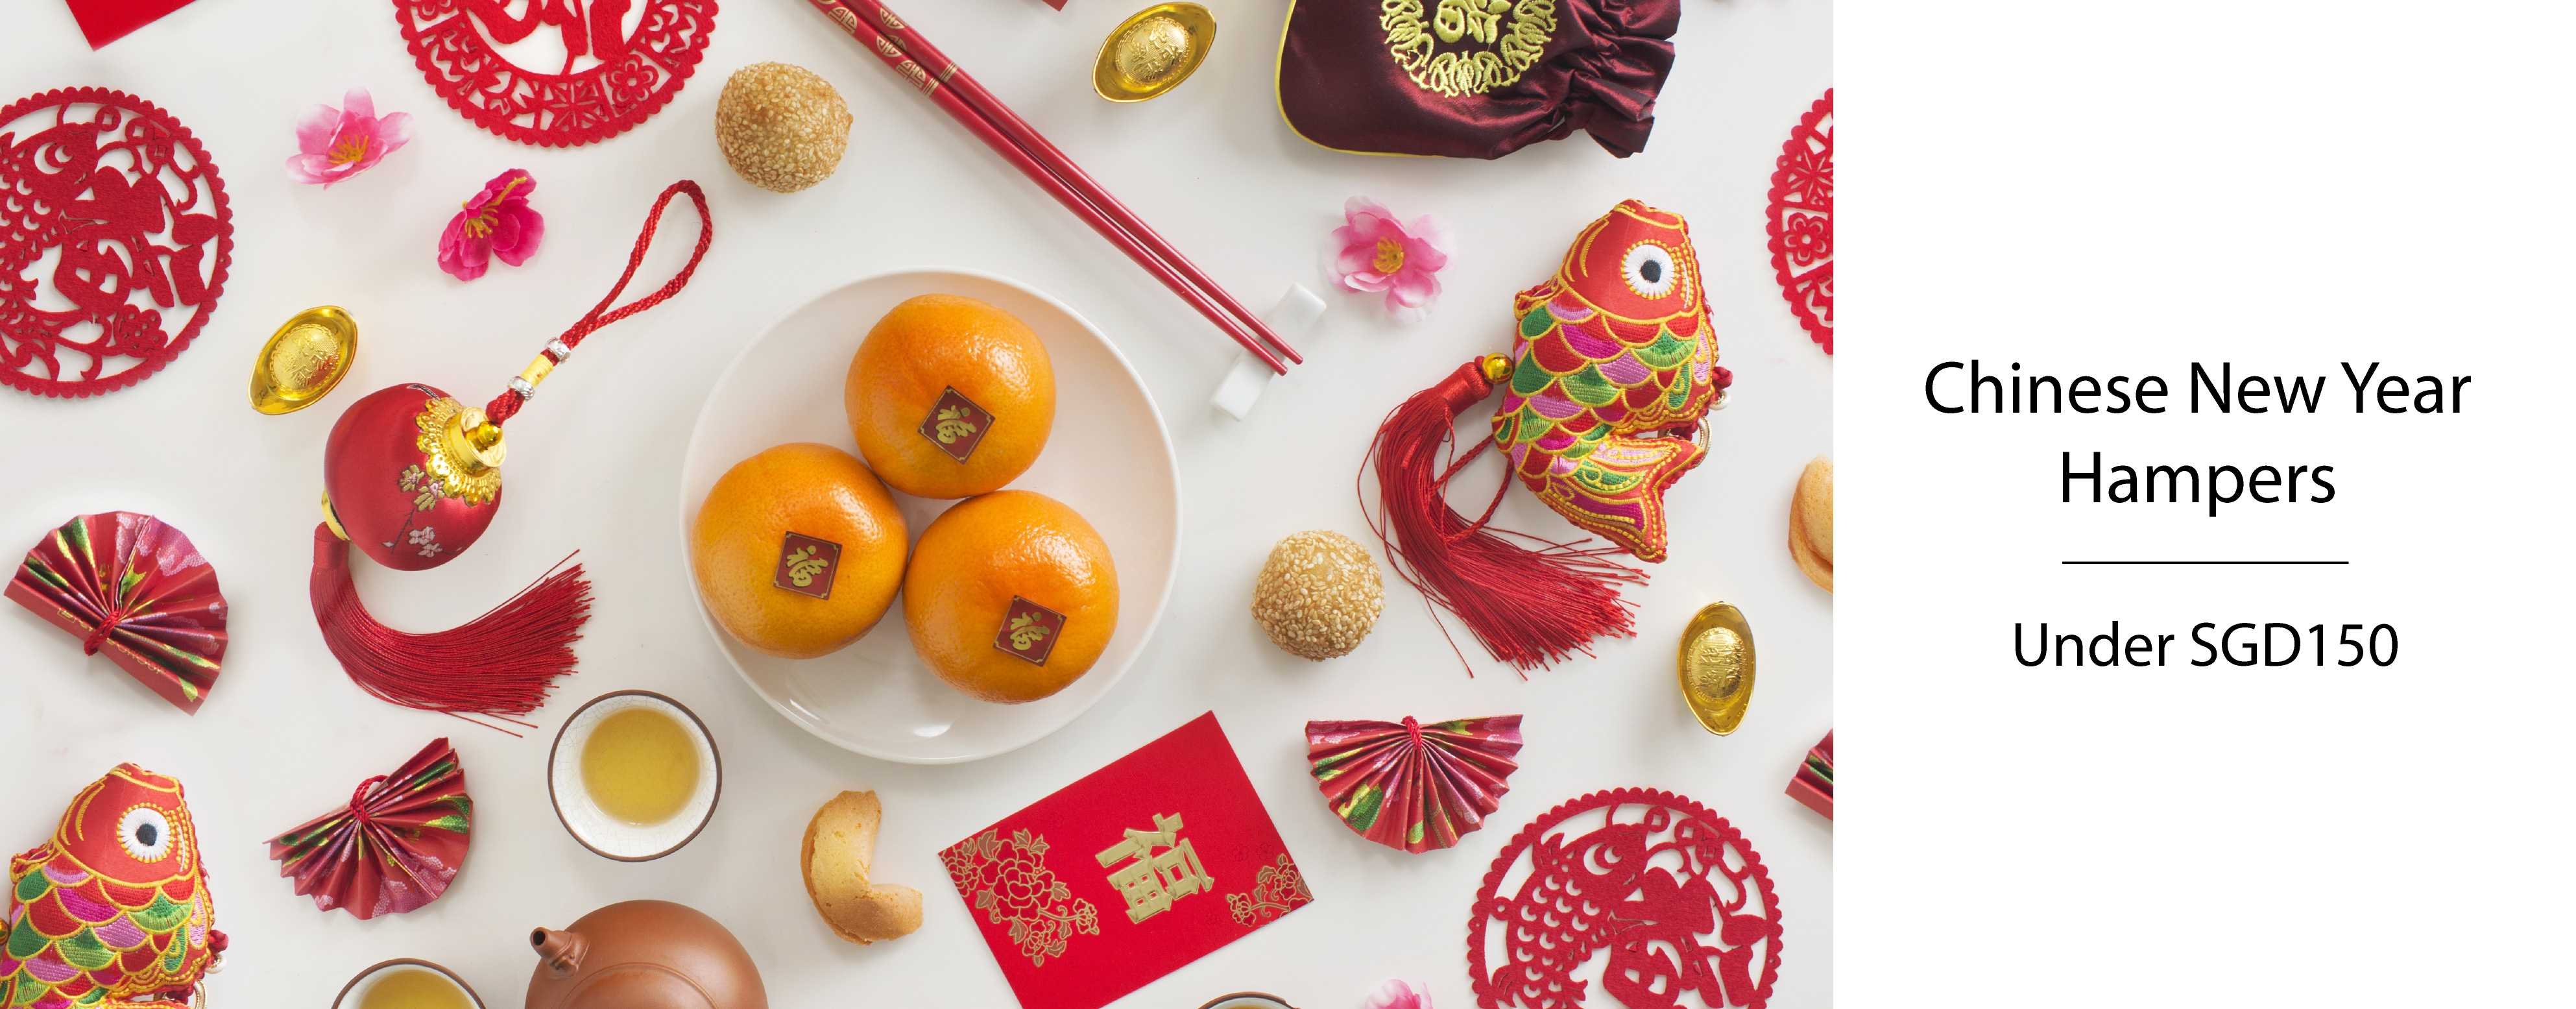 HChinese New Year Hampers under SGD150